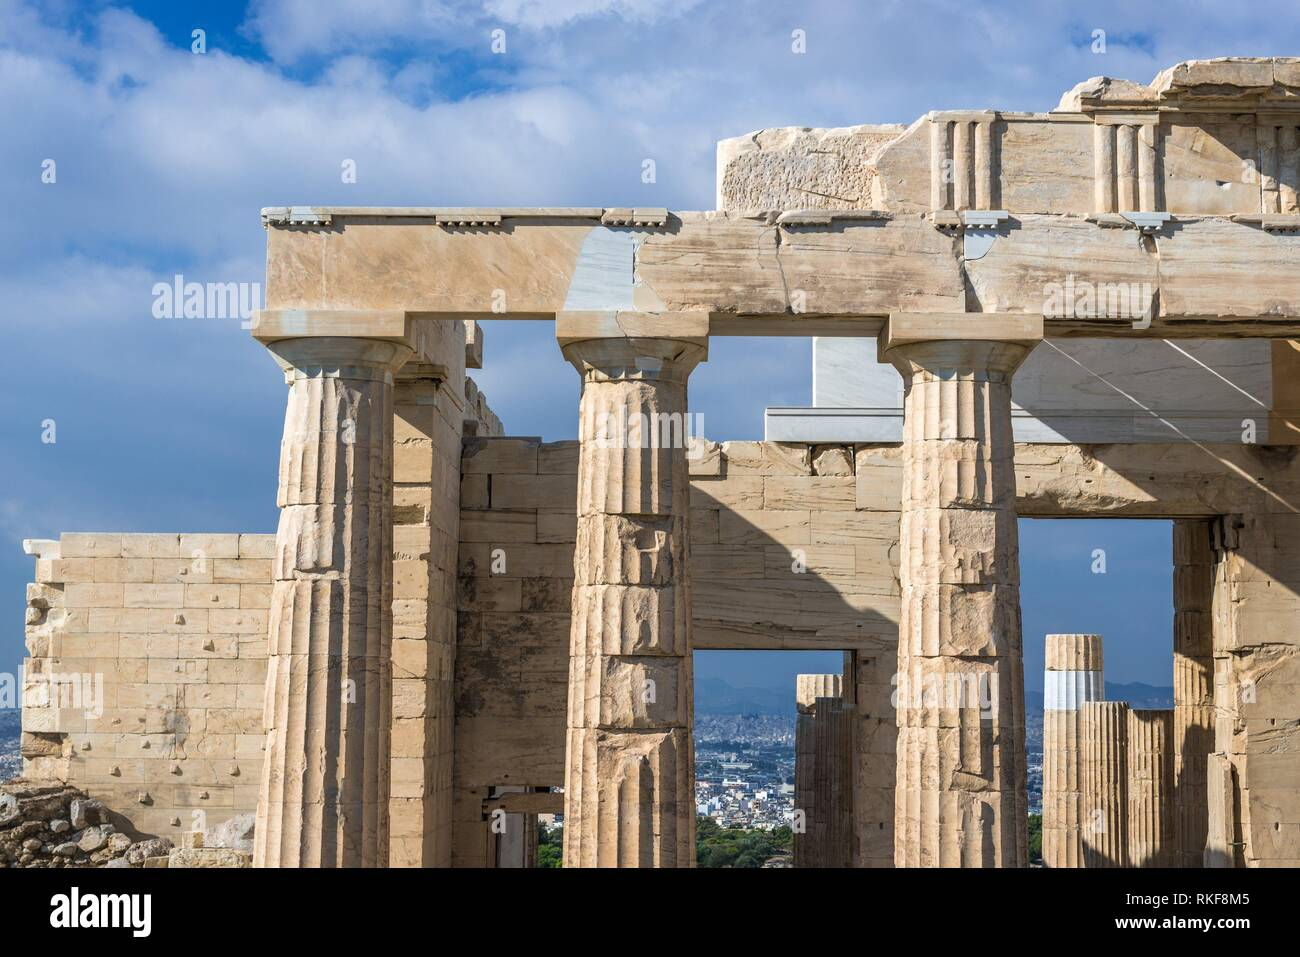 Facade of monumental gateway called Propylaea, entrance to the top of Acropolis of Athens city, Greece. - Stock Image